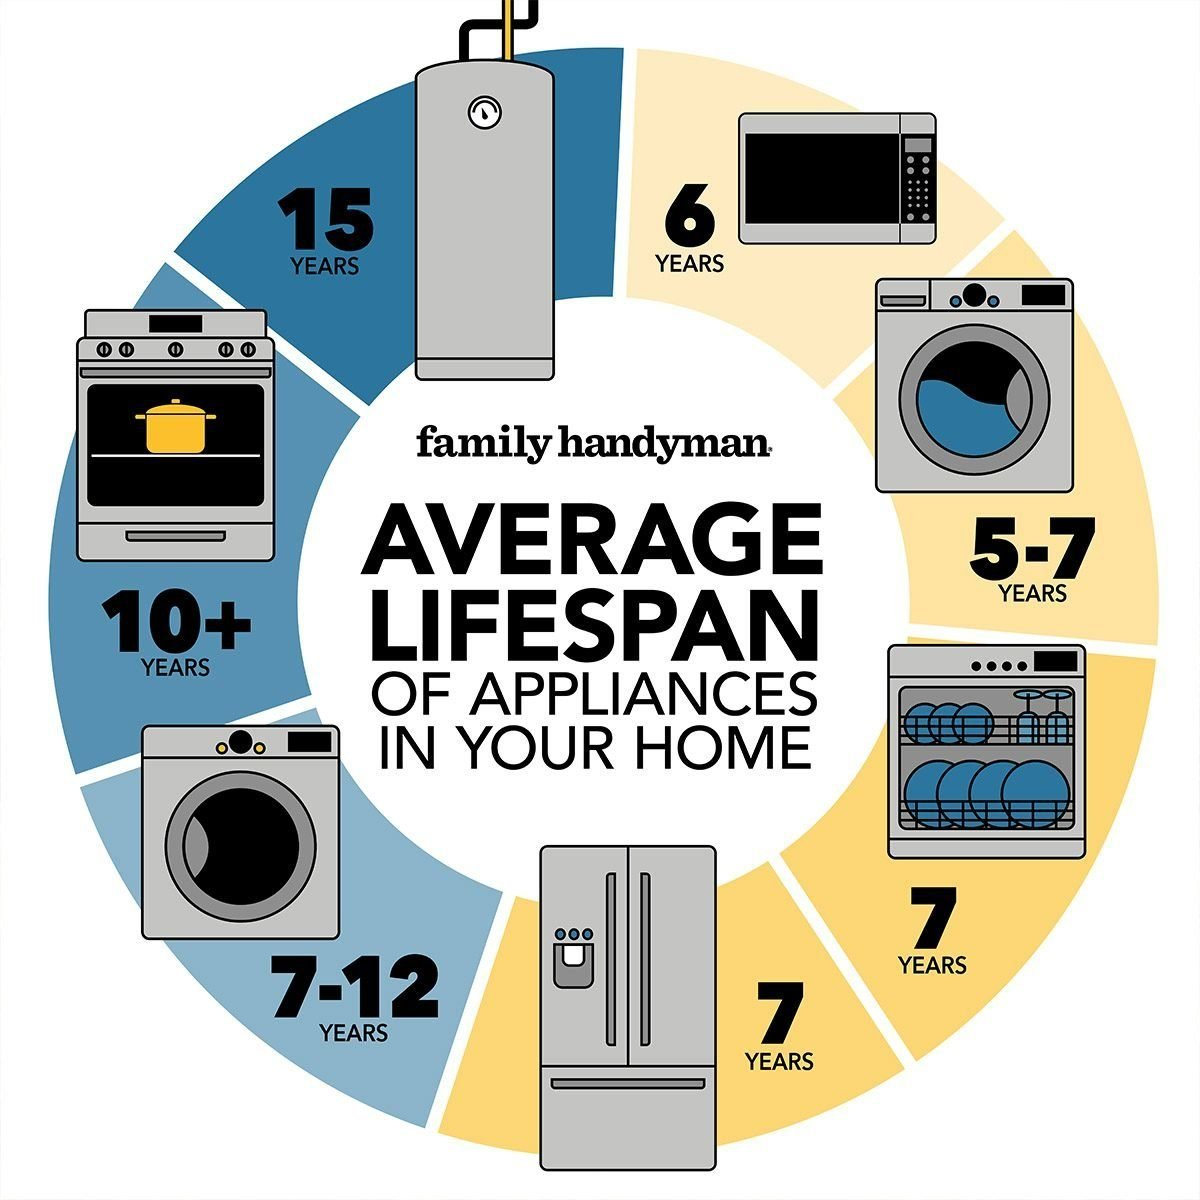 chart showing the life spans of household appliances